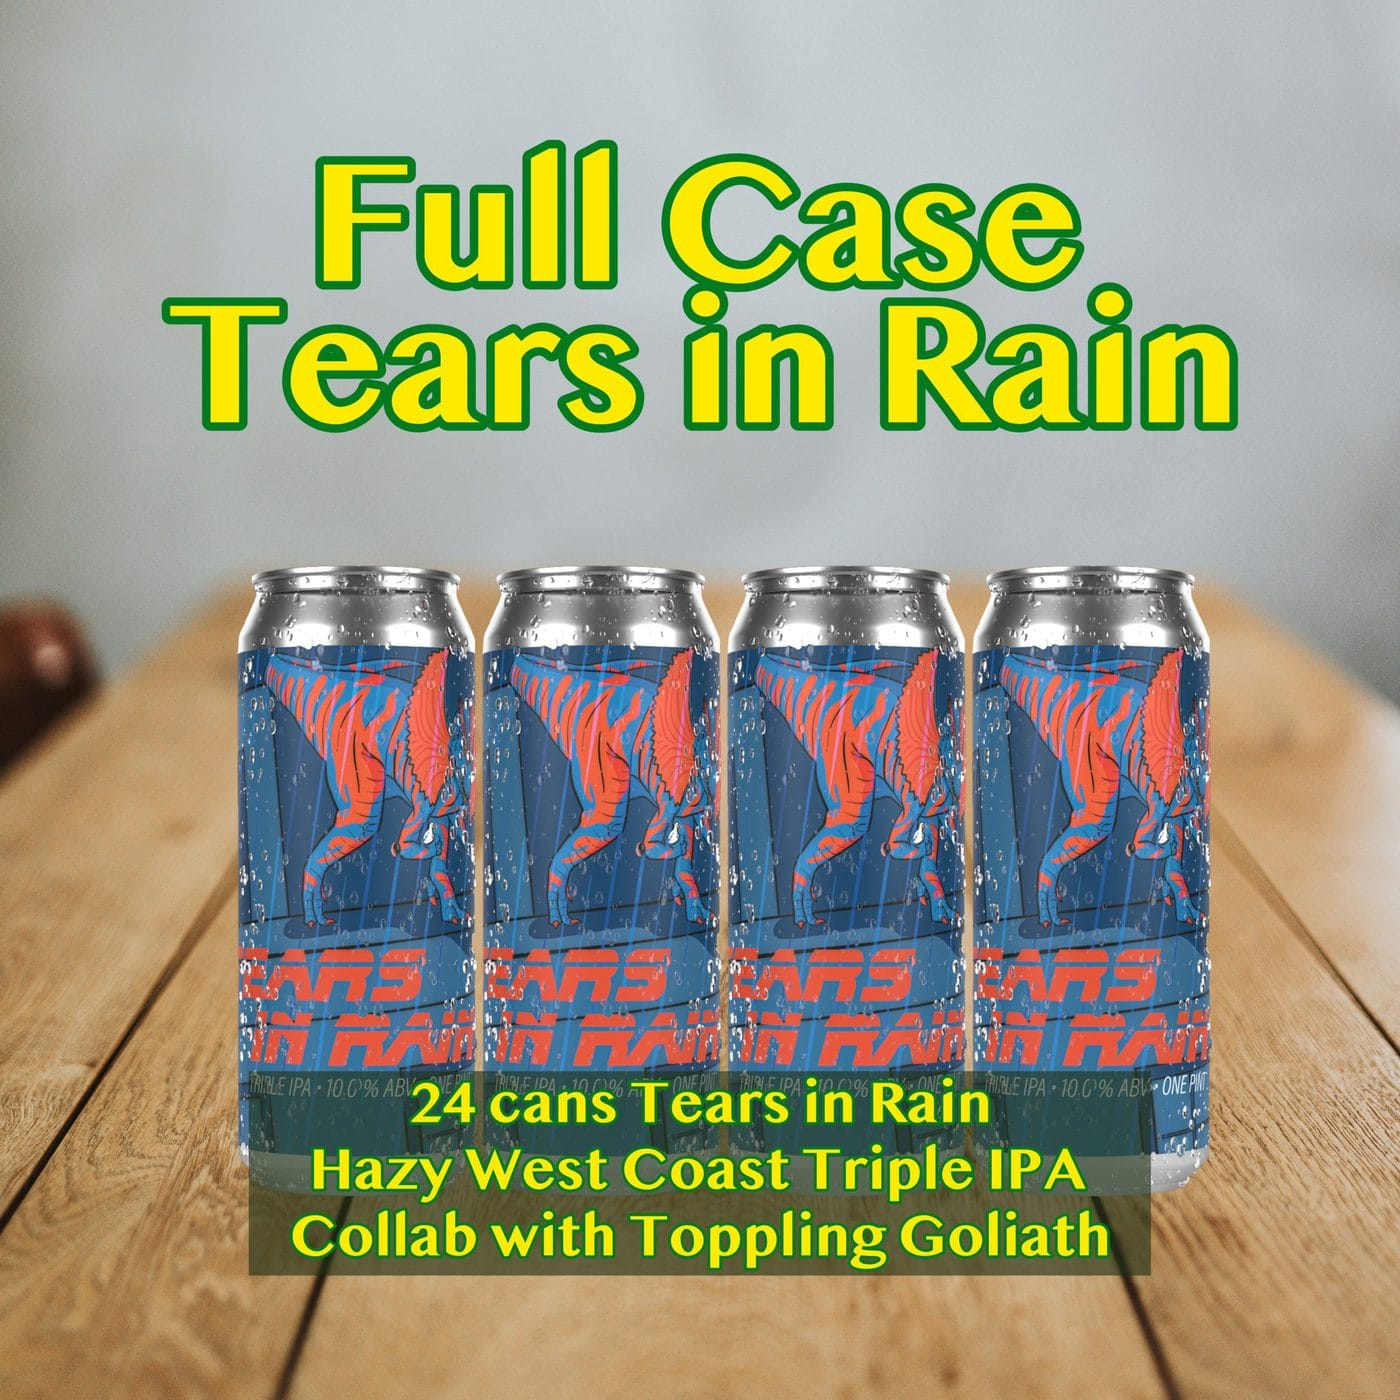 FULL CASE 24 CANS Tears In Rain HAZY TIPA – Shipping Out Tuesday 3/2 For Next Day Delivery*